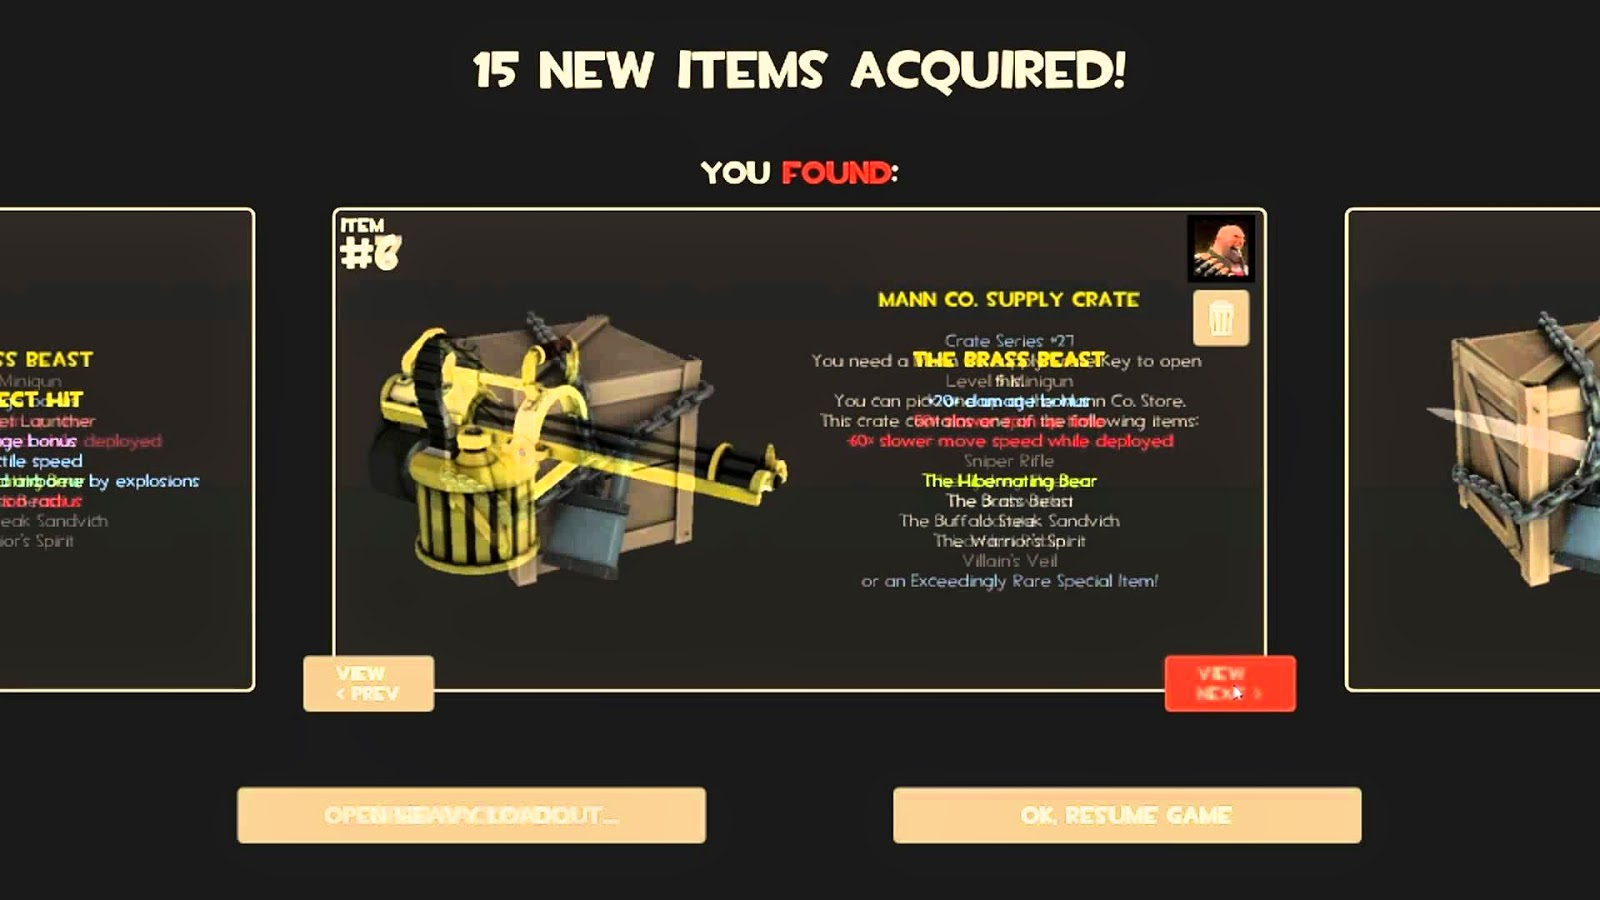 No survey team fortress 2 crate key hack get free tf2